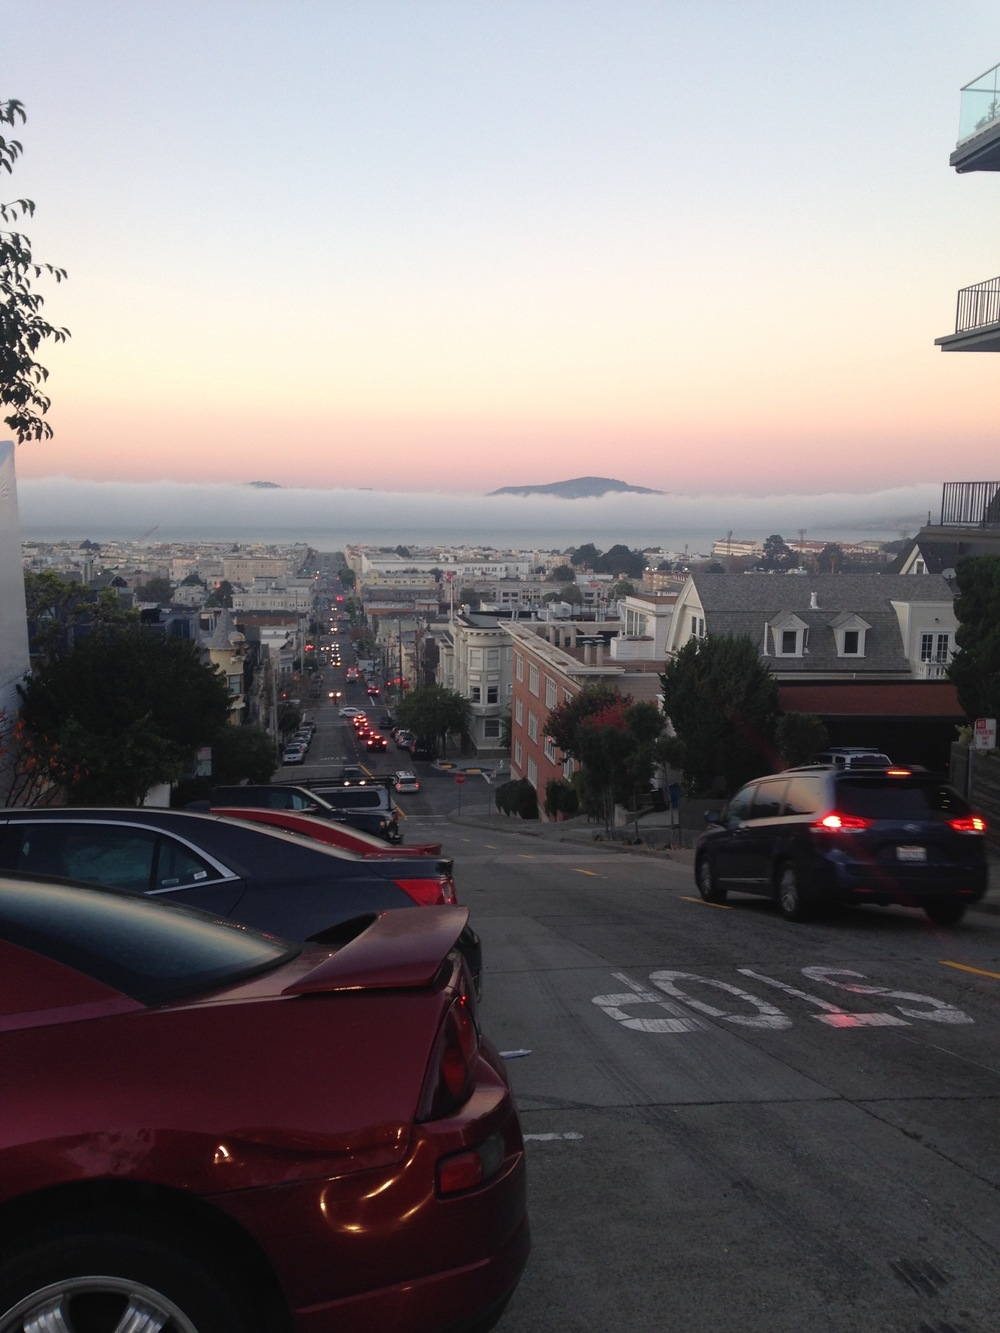 More fog. And killer views. Can you tell we were smitten? The view from the Fillmore Street Steps is one of the most spectacular but accessible views around.